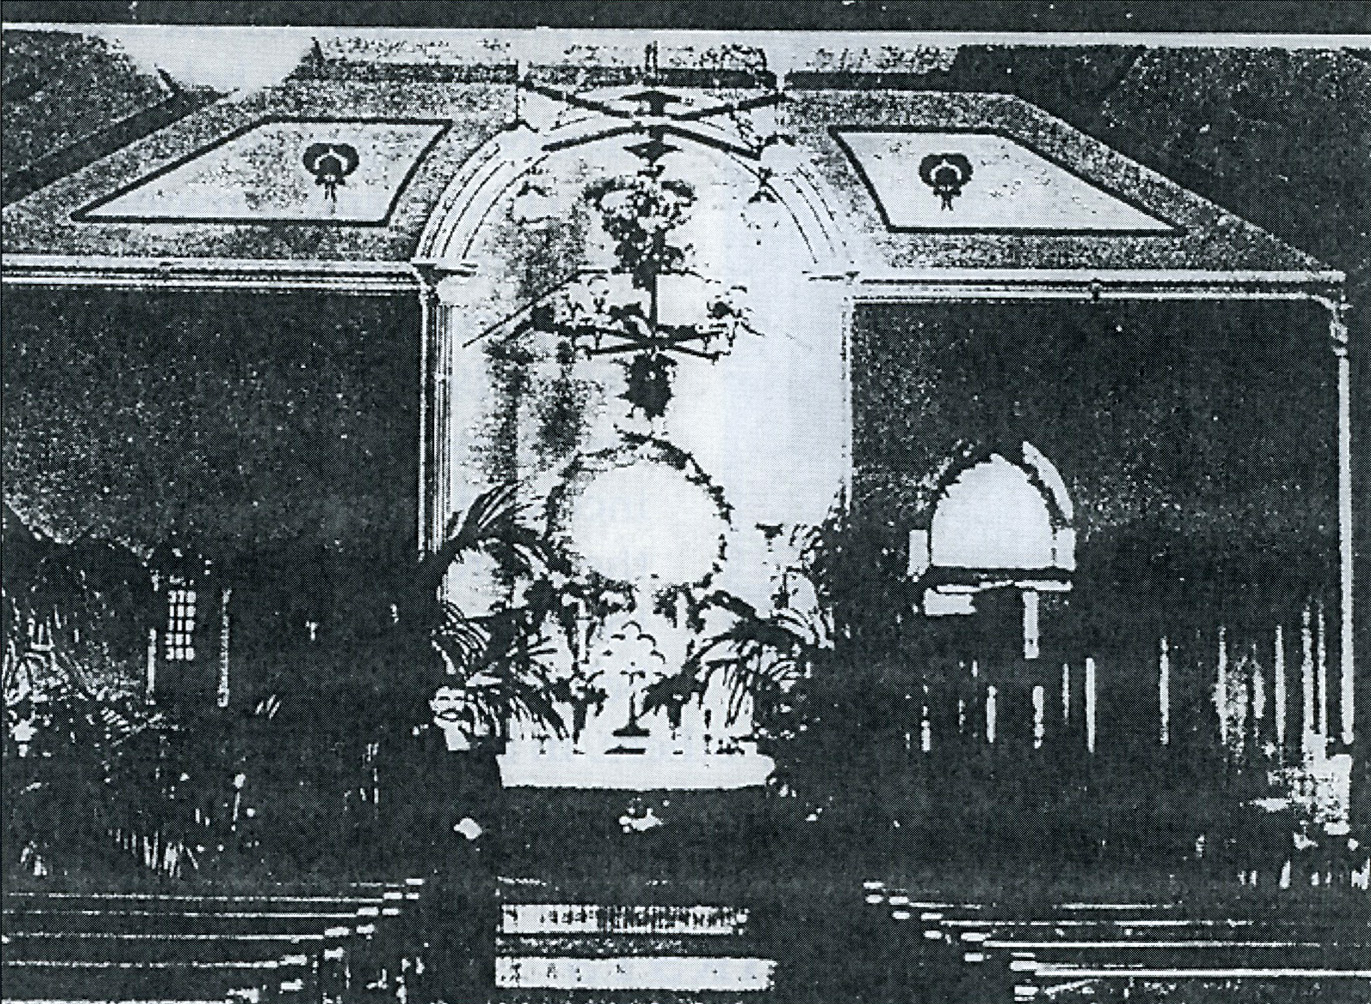 Picture, taken in 1914, of the early church interior with Pastor Schlick standing just left of center. Note the dark walls, the chandeliers, the Greek columns either side of the recessed alter, the pulpit on the right side (where later Carl Schmidt was to build a pipe organ with discarded parts salvaged from rebuilt organs) the window behind the pulpit indicating the parsonage had not yet been constructed, and the palms a symbol that the picture was taken during the Easter Season. Also! the early church was serviced by a reed organ that was pumped with the feet to build up air in the chambers, and when the keys where played - sound was generated. Bertha Oelschlager was organist for many many years prior to Carl Schmidt's tenure which ended with his death in 1982.